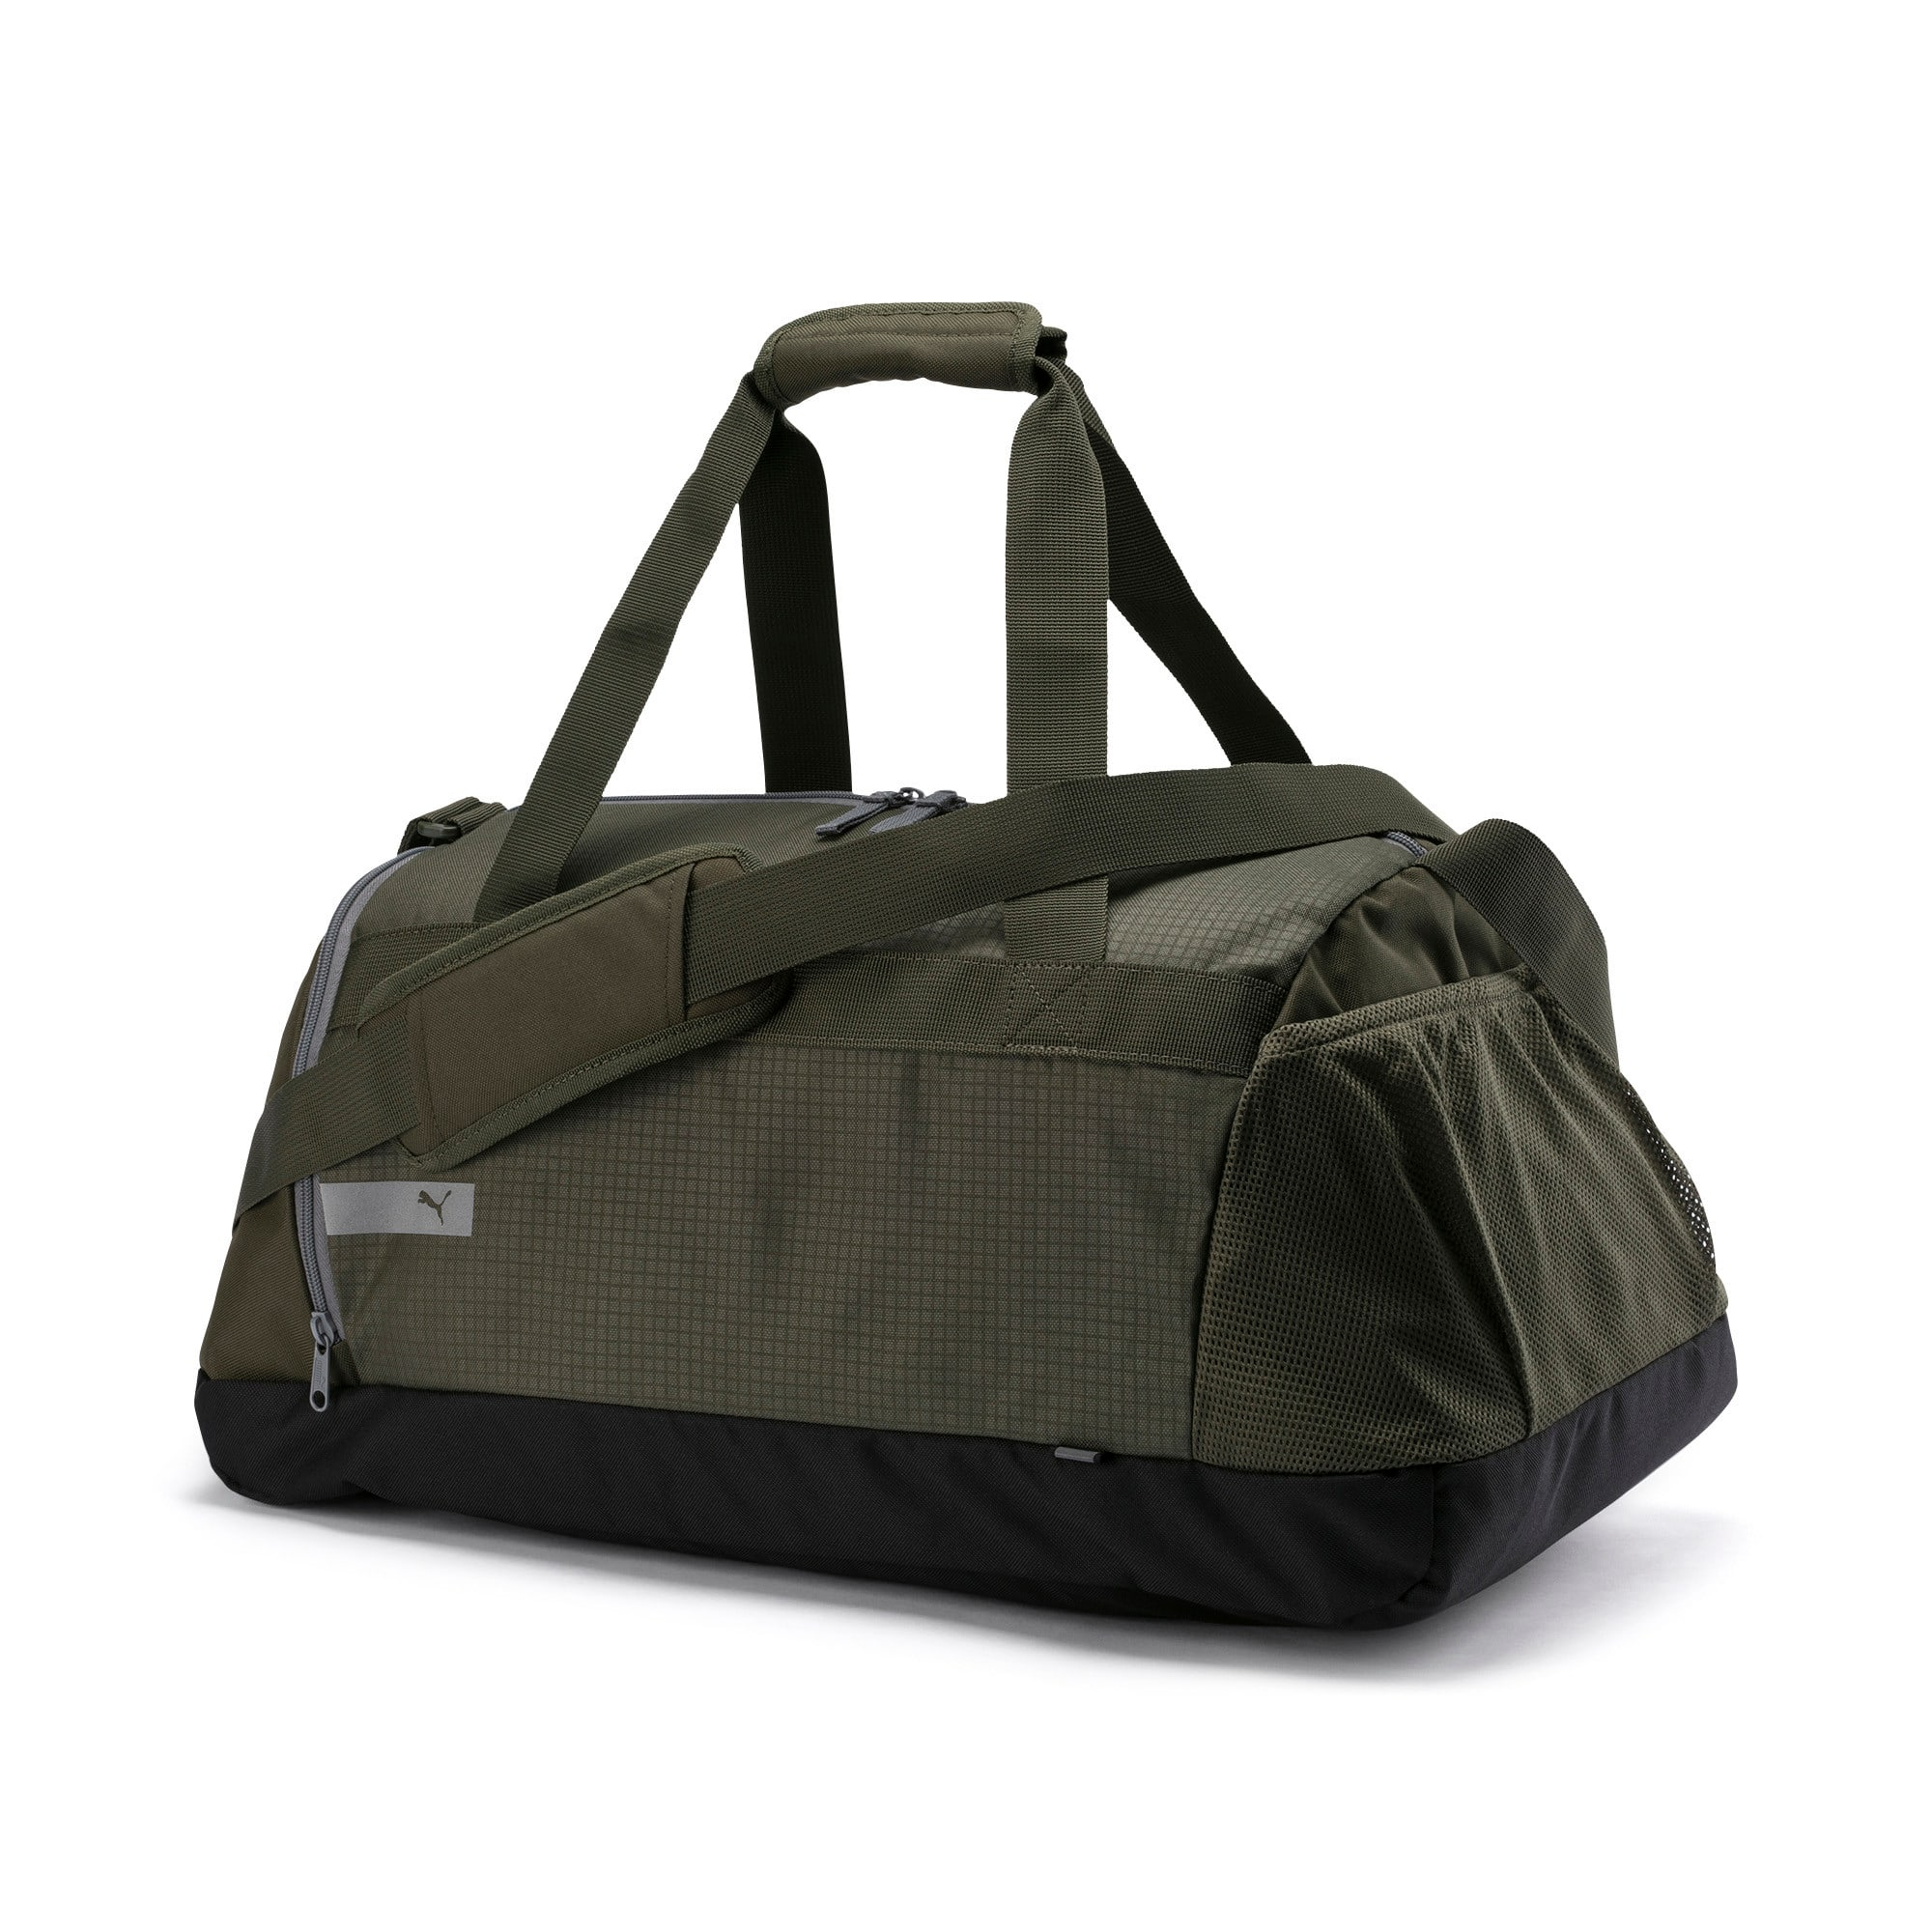 Thumbnail 1 of PUMA Vibe Gym Bag, Forest Night, medium-IND